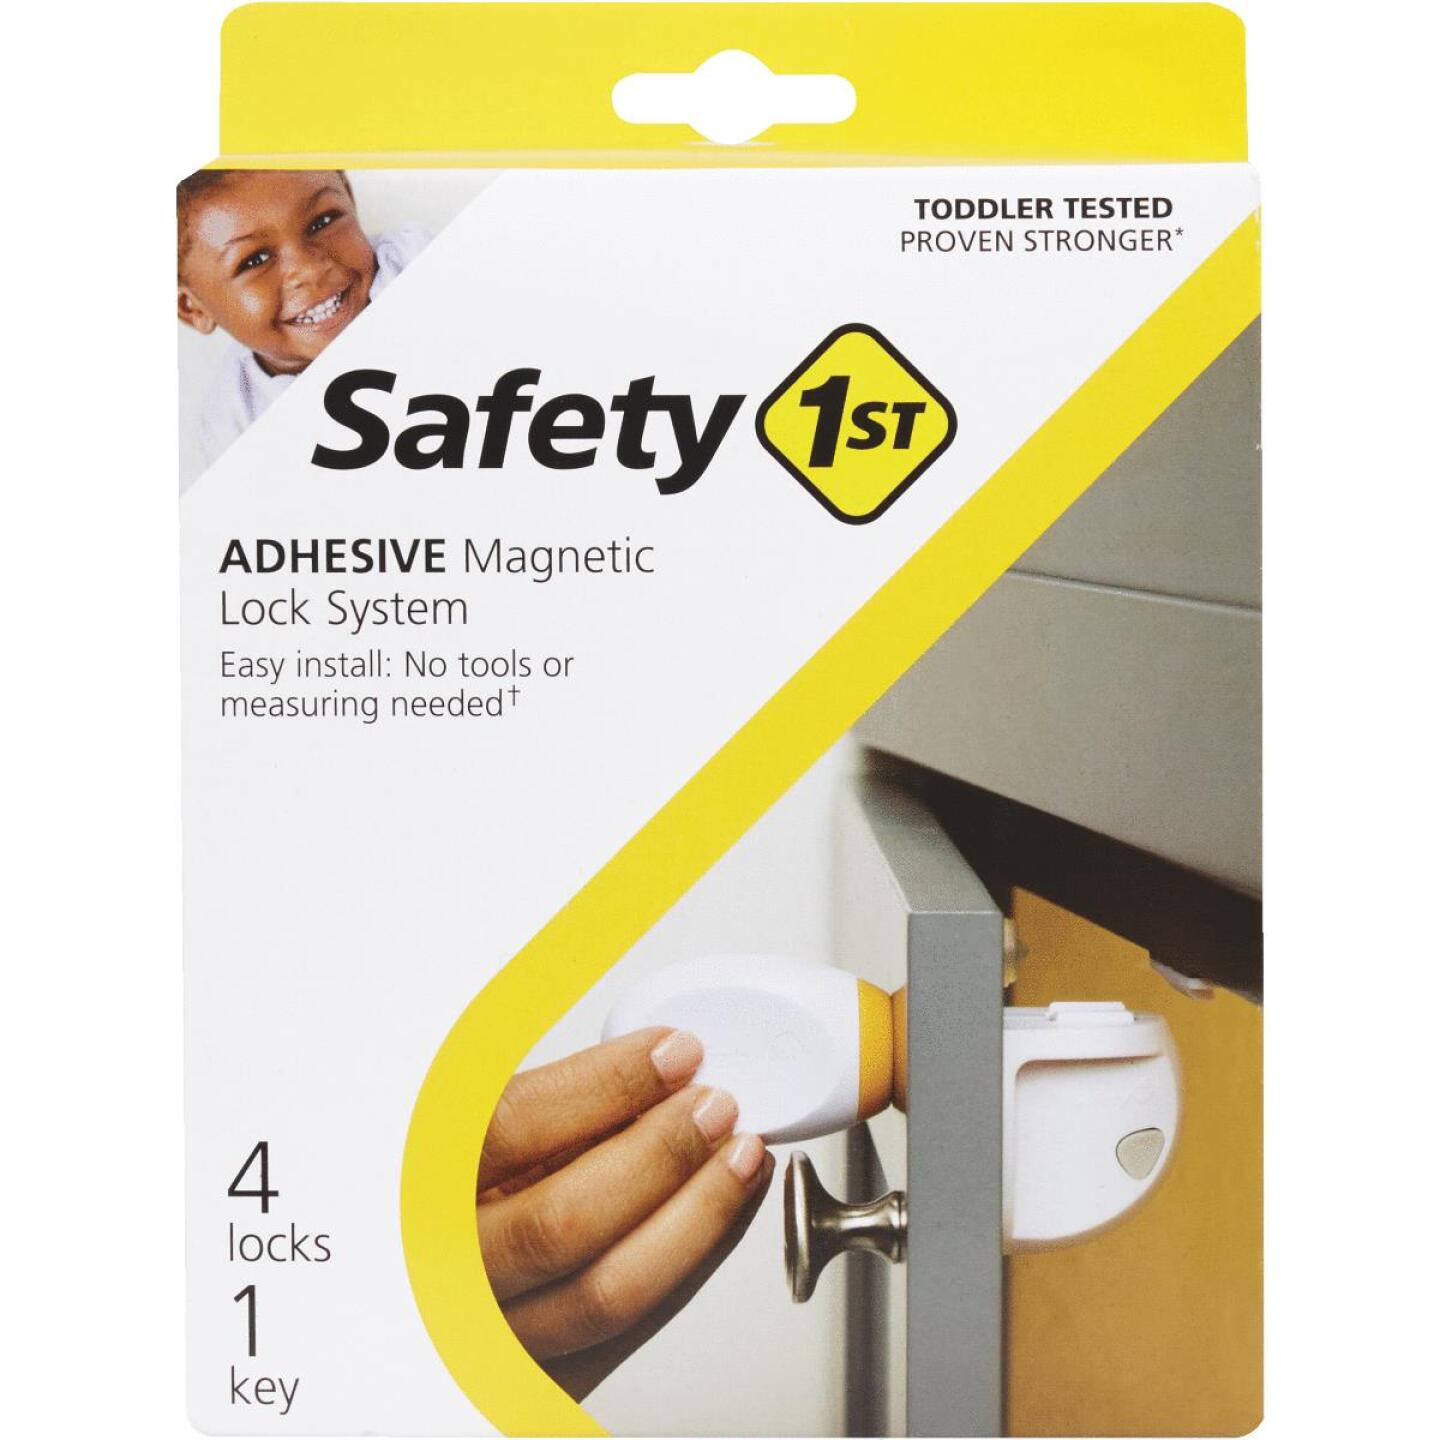 Safety 1st Plastic Adhesive Magnetic Lock System (4-Lock Set) Image 2